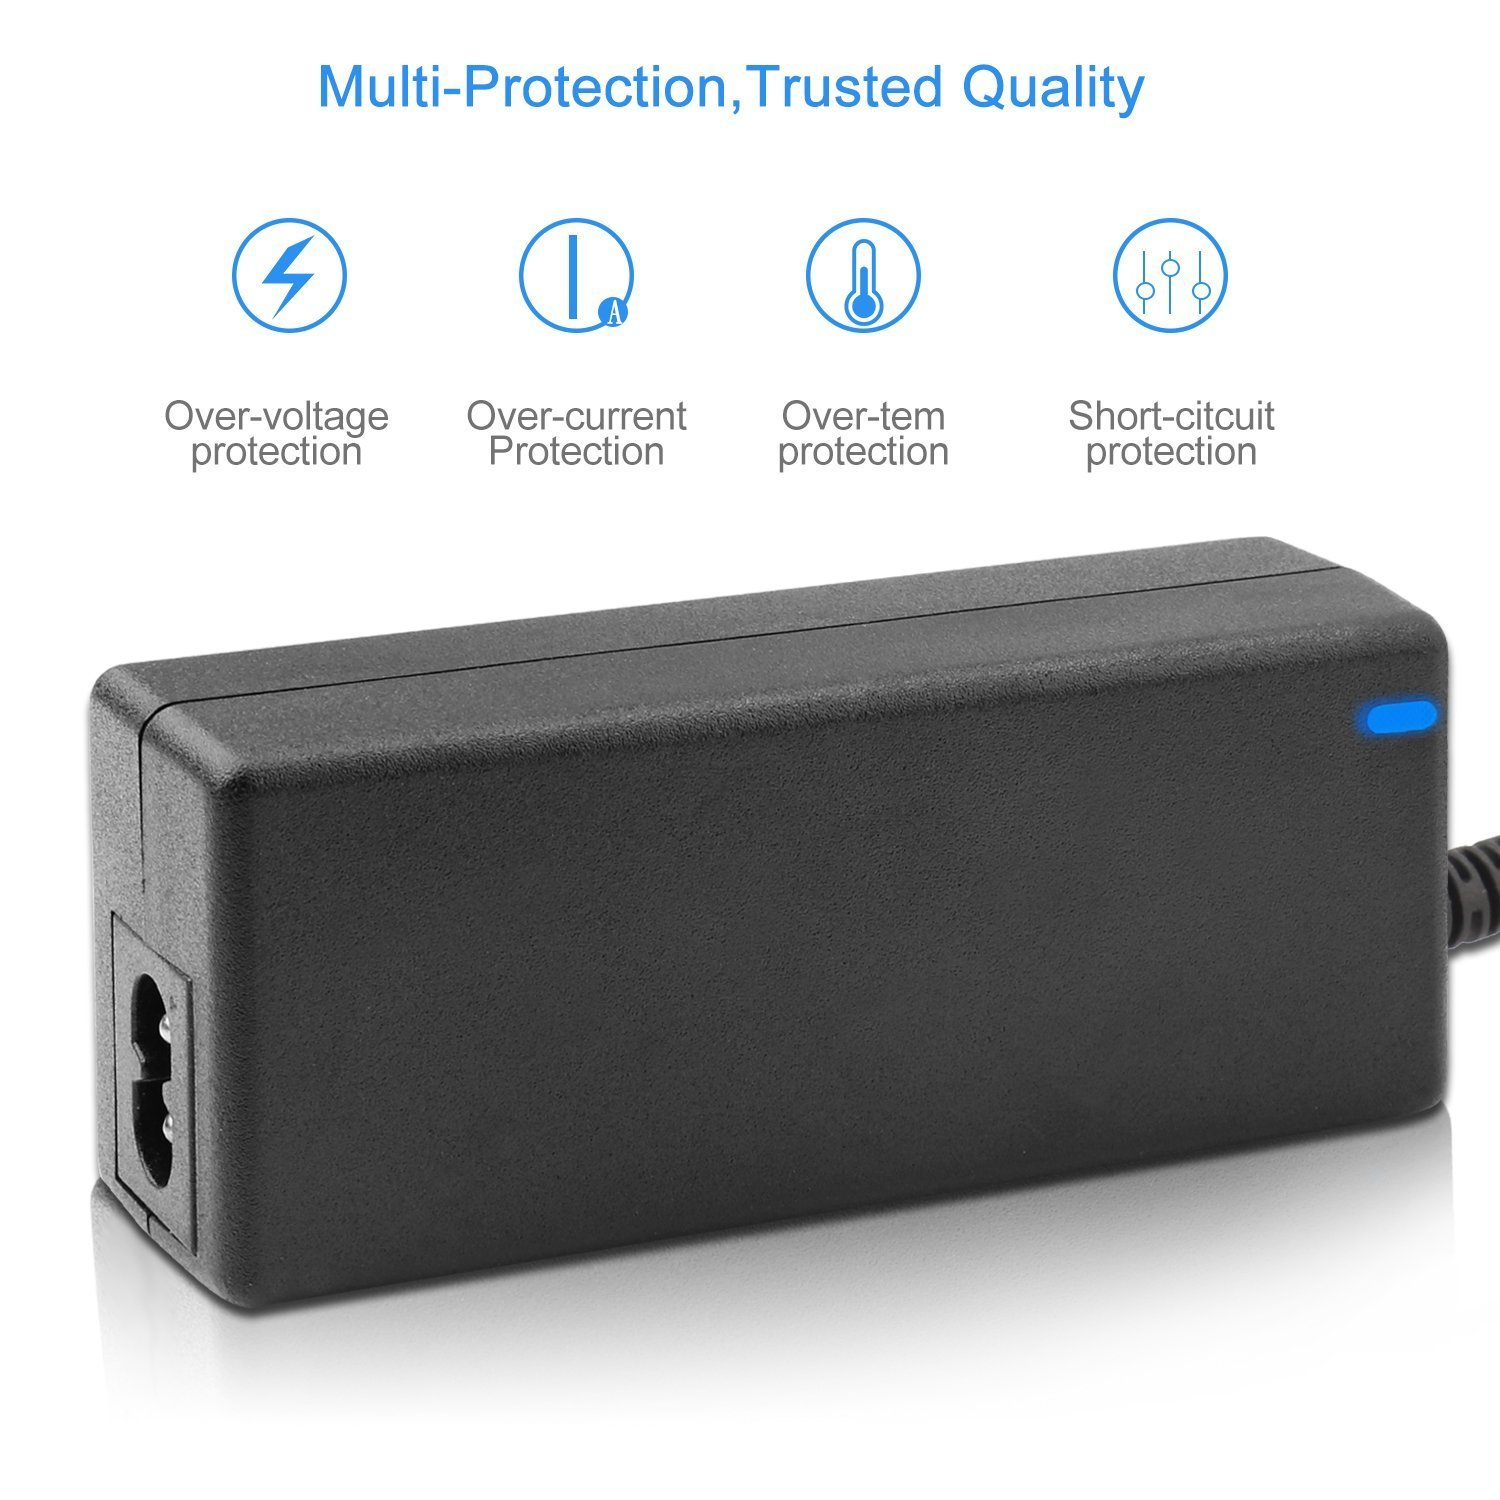 New 12V 3.33A 40W AC//DC Adapter For FSP FSP040-DGAA1 Delta ADP-40DD B Check Point 9NA0402144 Philips Dell S2340 2230MX S2240M S2216H S2340L HIPRO HP-O2040D43 Power Supply Cord Cable Charger PSU